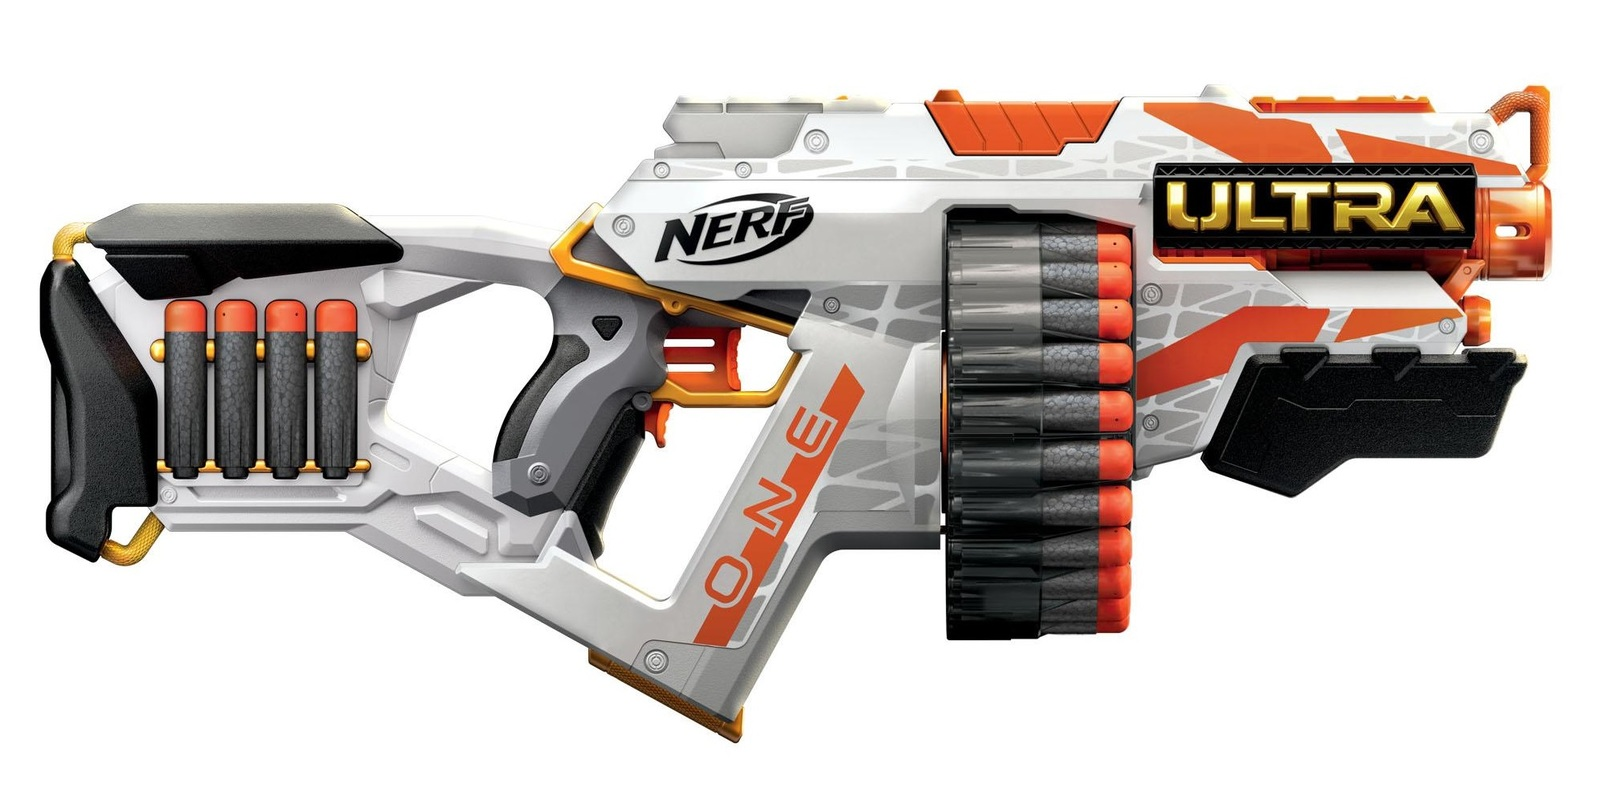 Nerf: Ultra One - Motorized Blaster image